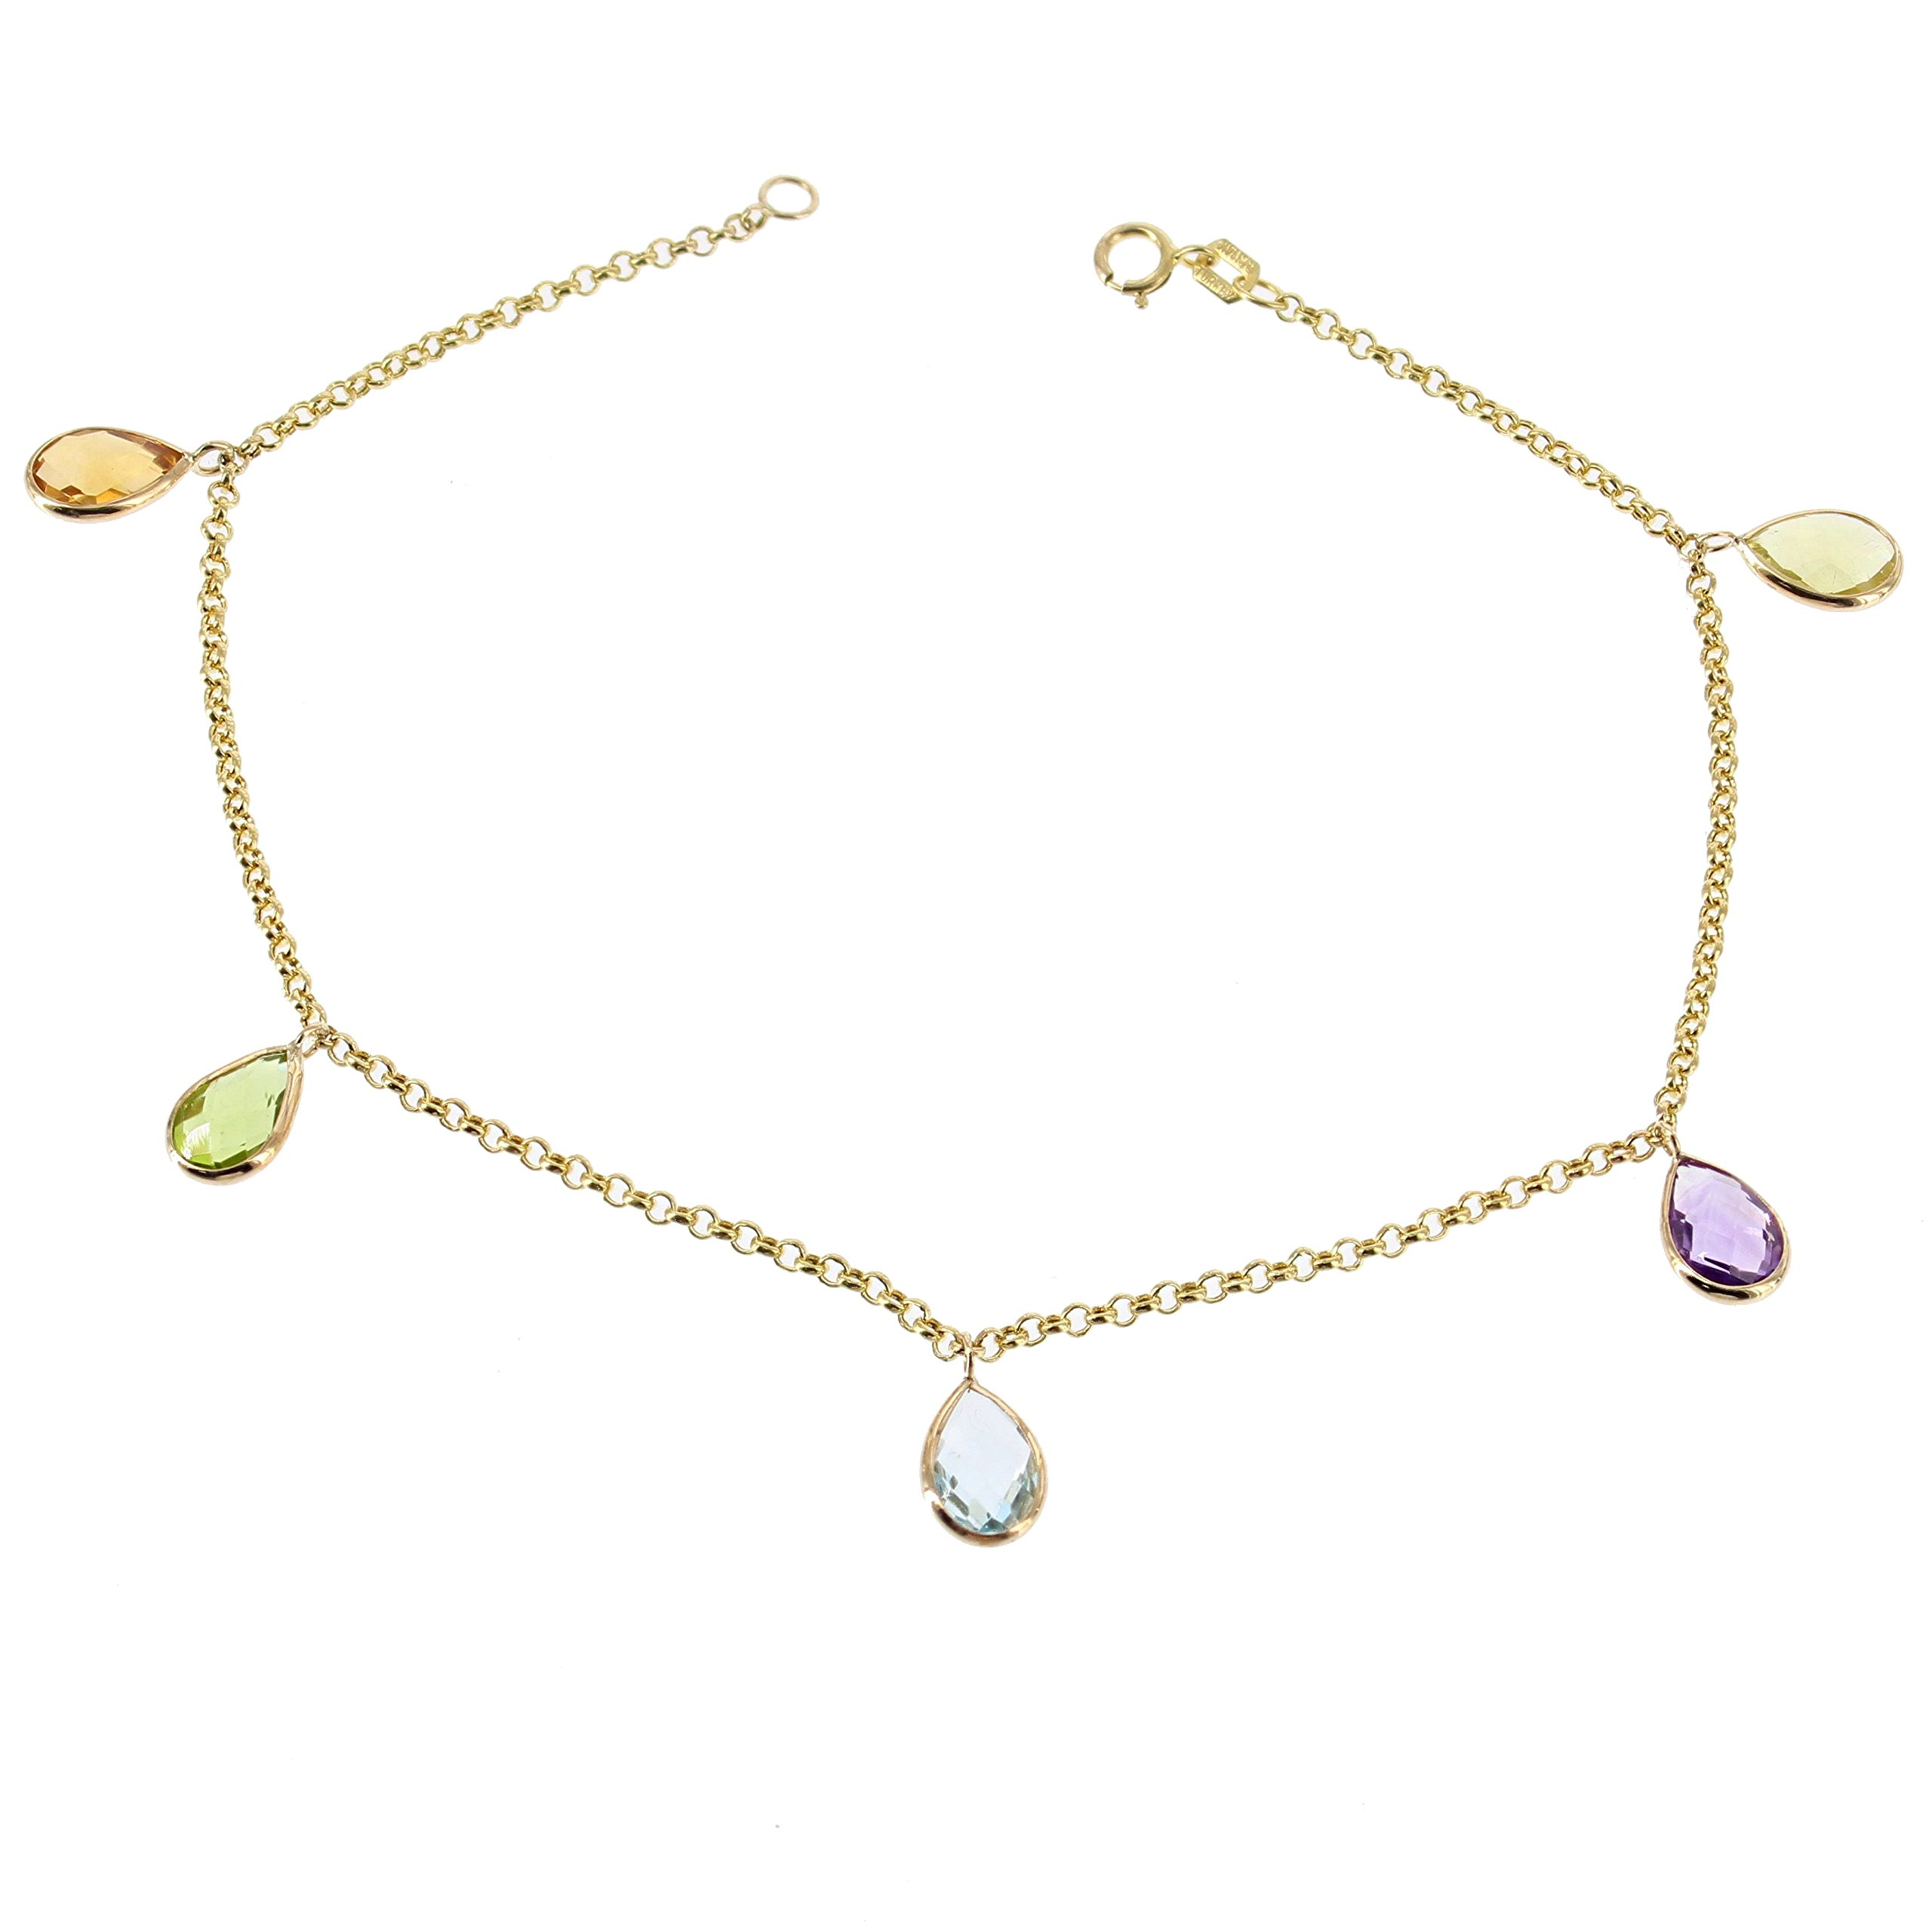 14K Yellow Gold Gemstone Anklet Bracelet With Hanging Gemstones 9 -11 Inches